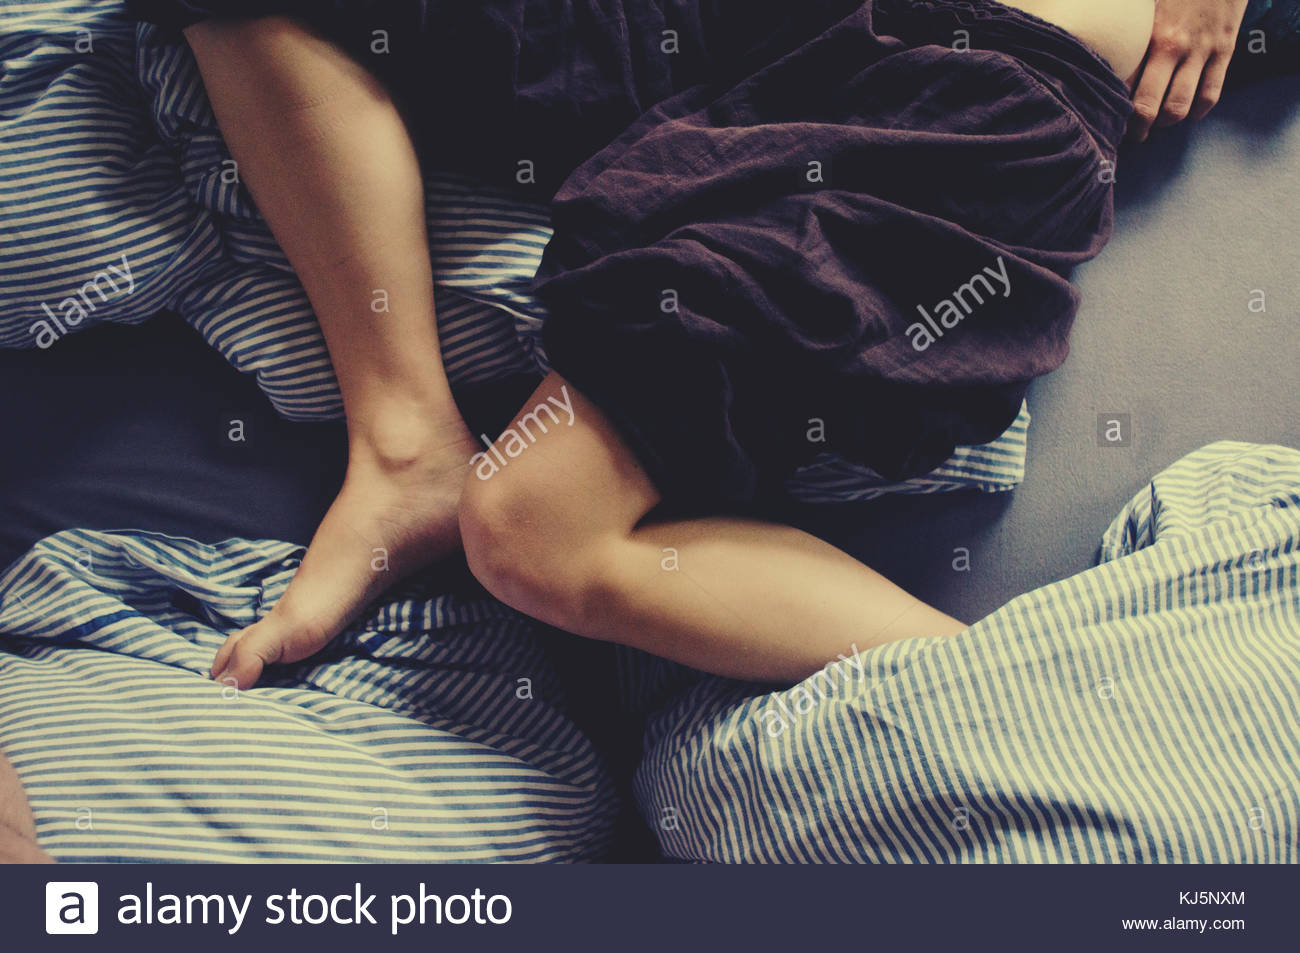 Legs in bed - Stock Image